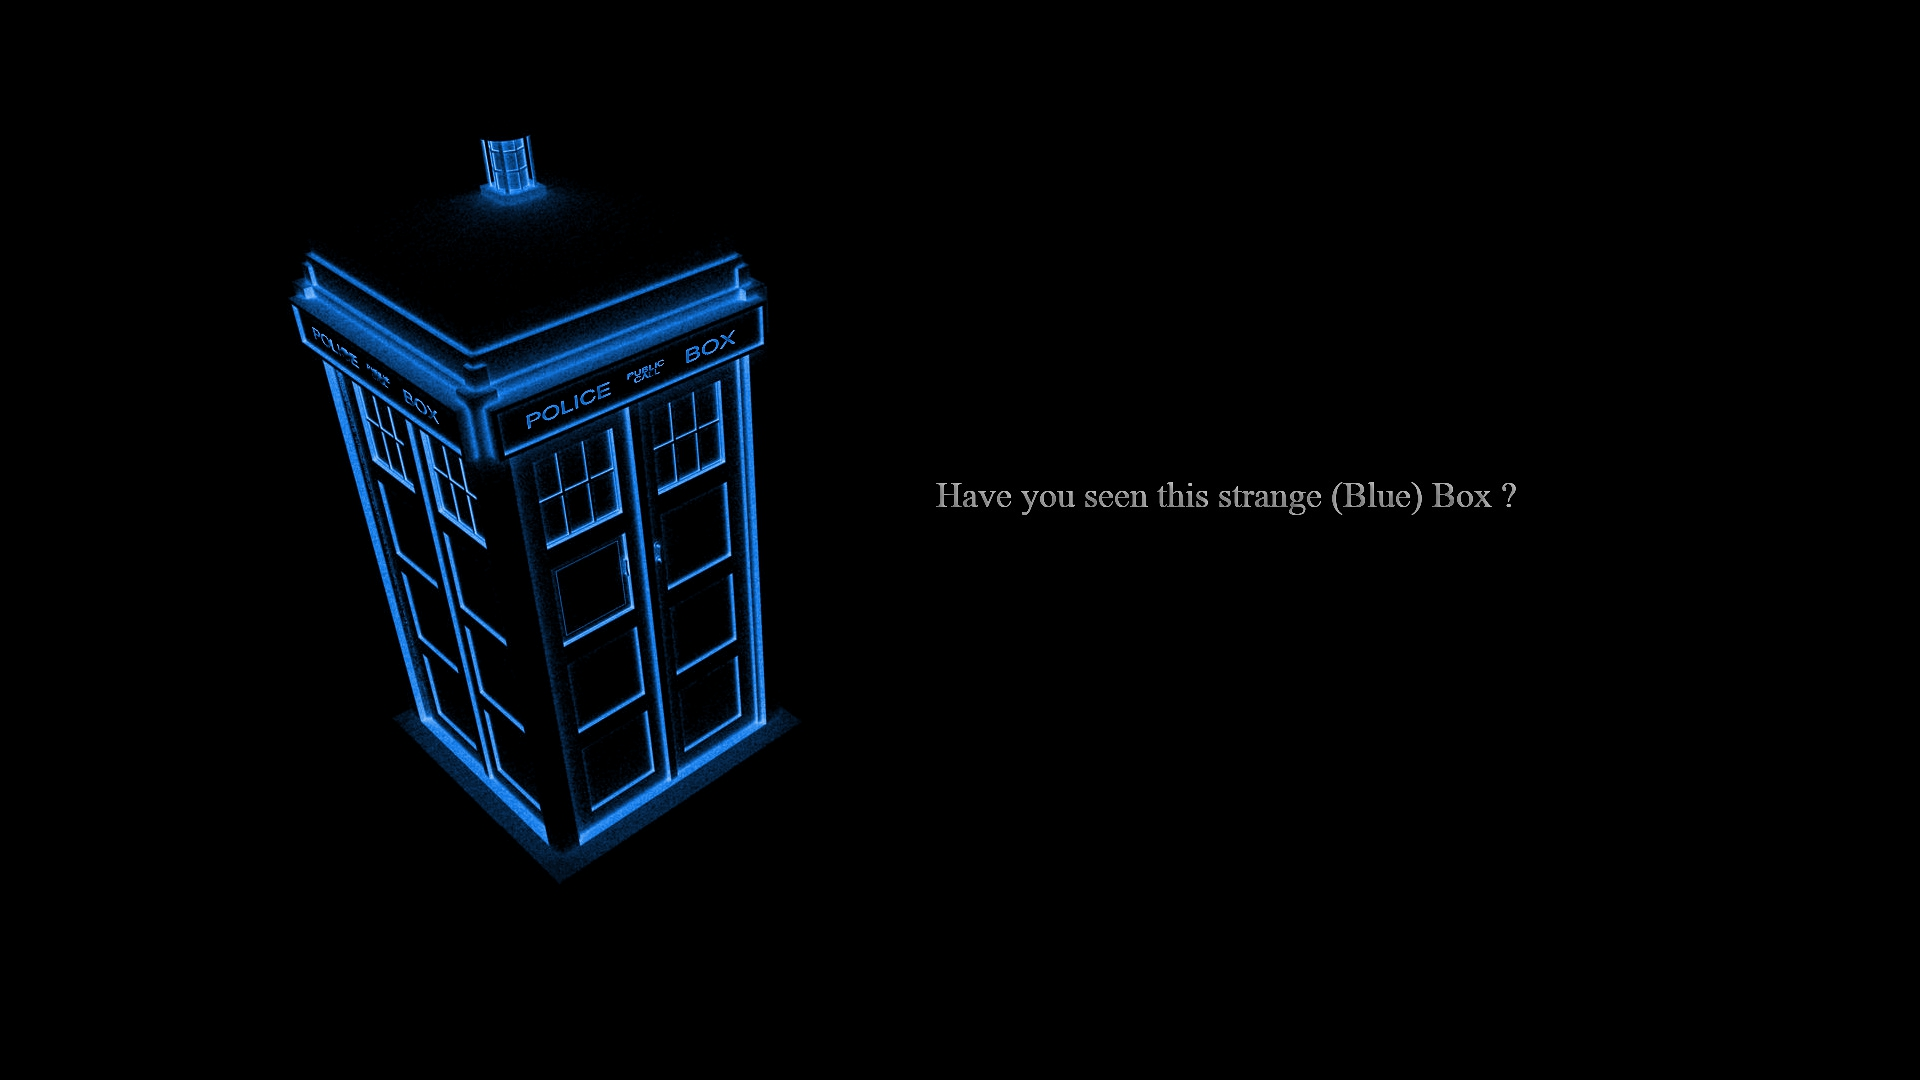 Doctor Who Hd Wallpaper Background Image 1920x1080 Id